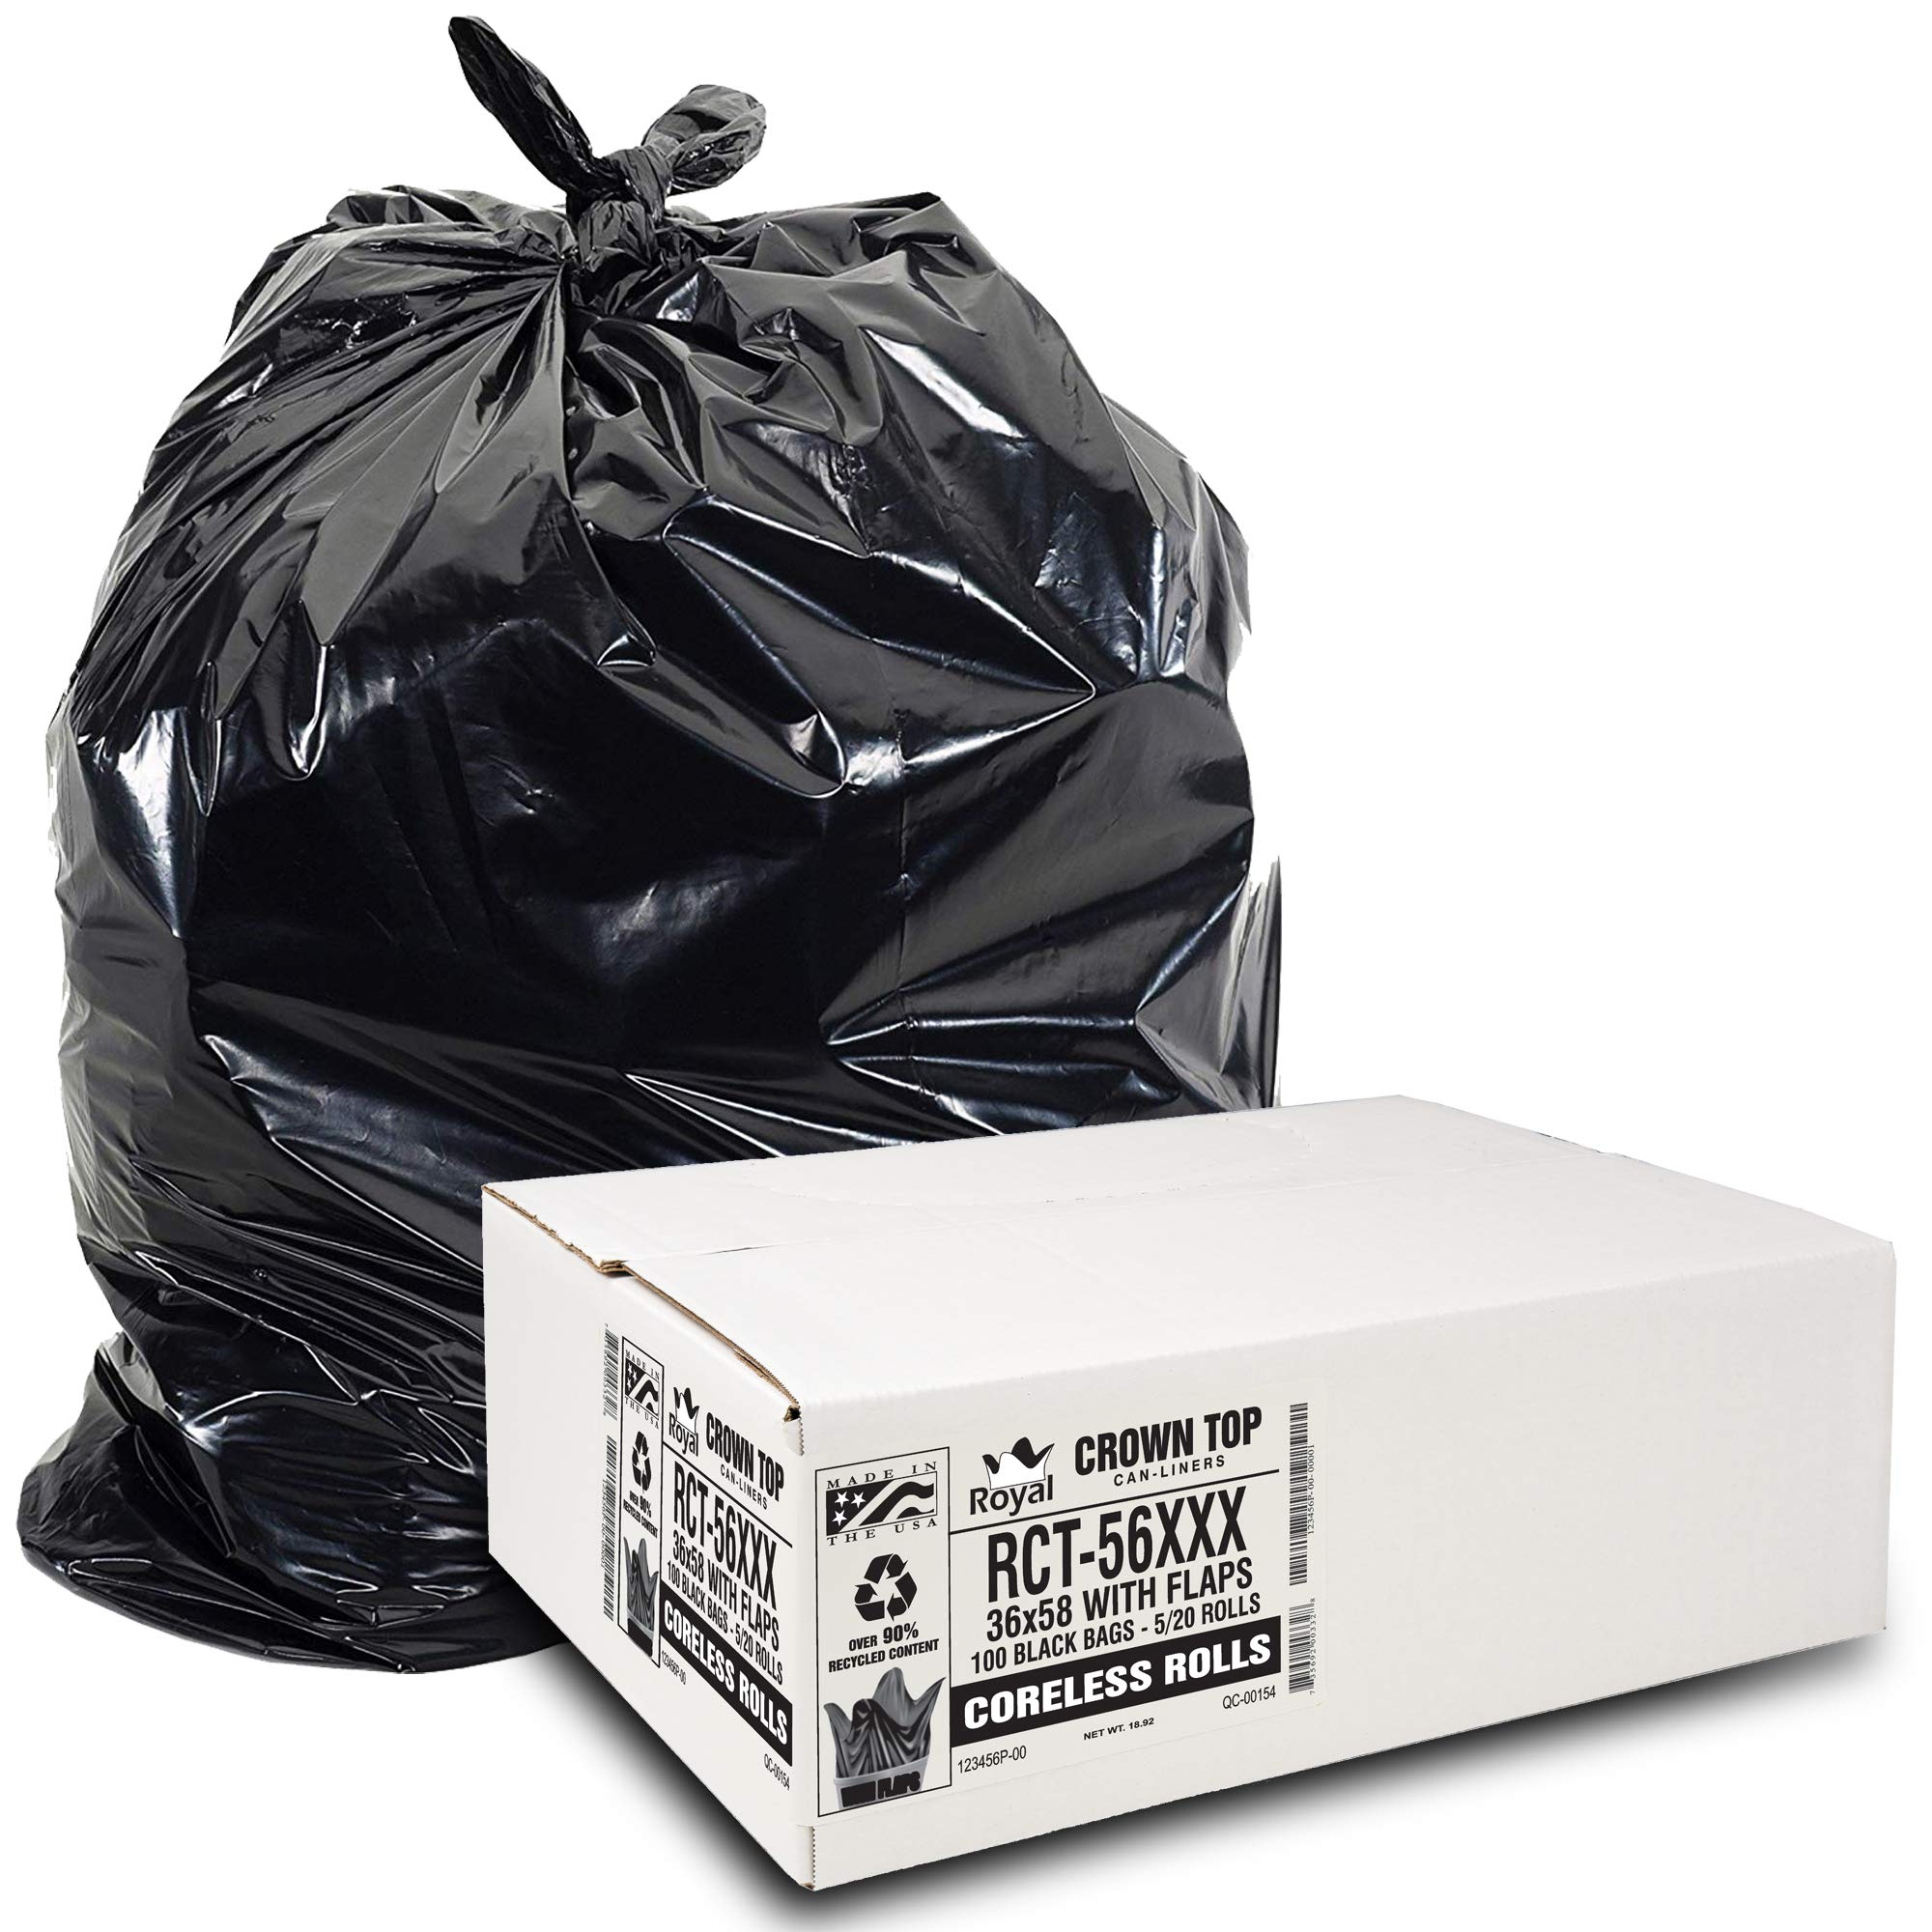 Heavy Duty 55 Gallon Trash Bags - (Huge 100 Pack/w Flap Ties) - 2.0 MIL (Equivalent) 43'' x 46'' Star Sealed Bottom Thick Garbage Bags for Contractors, Lawn, Leaf, Yard Waste, Commercial Kitchen, by Aluf Plastics